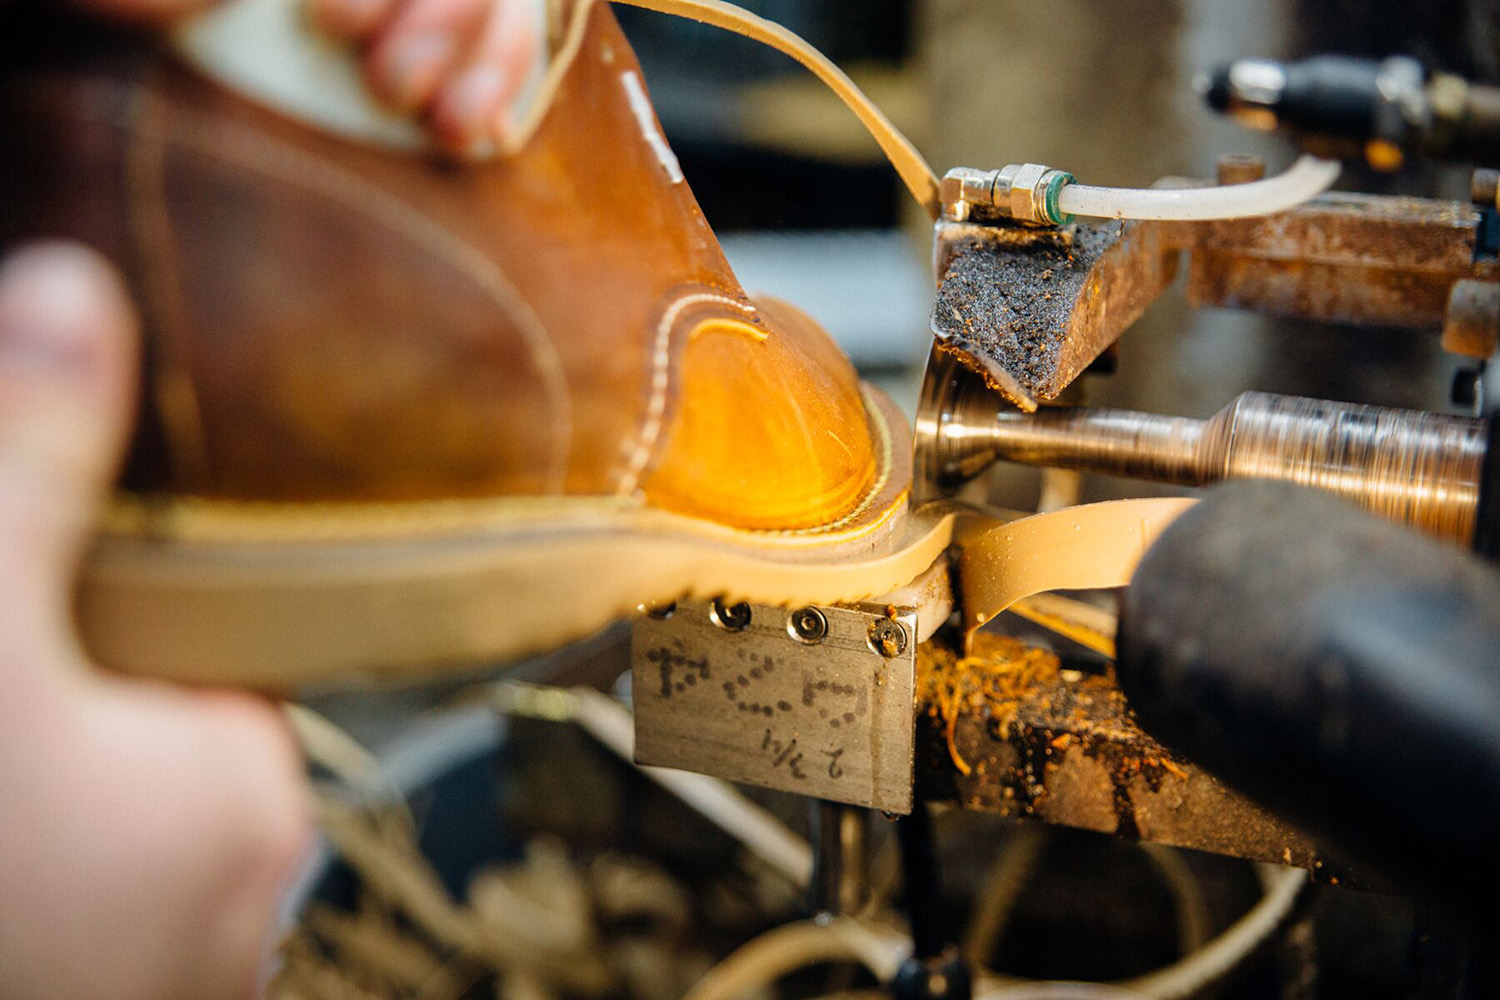 Red Wing boots are handmade in Minnesota